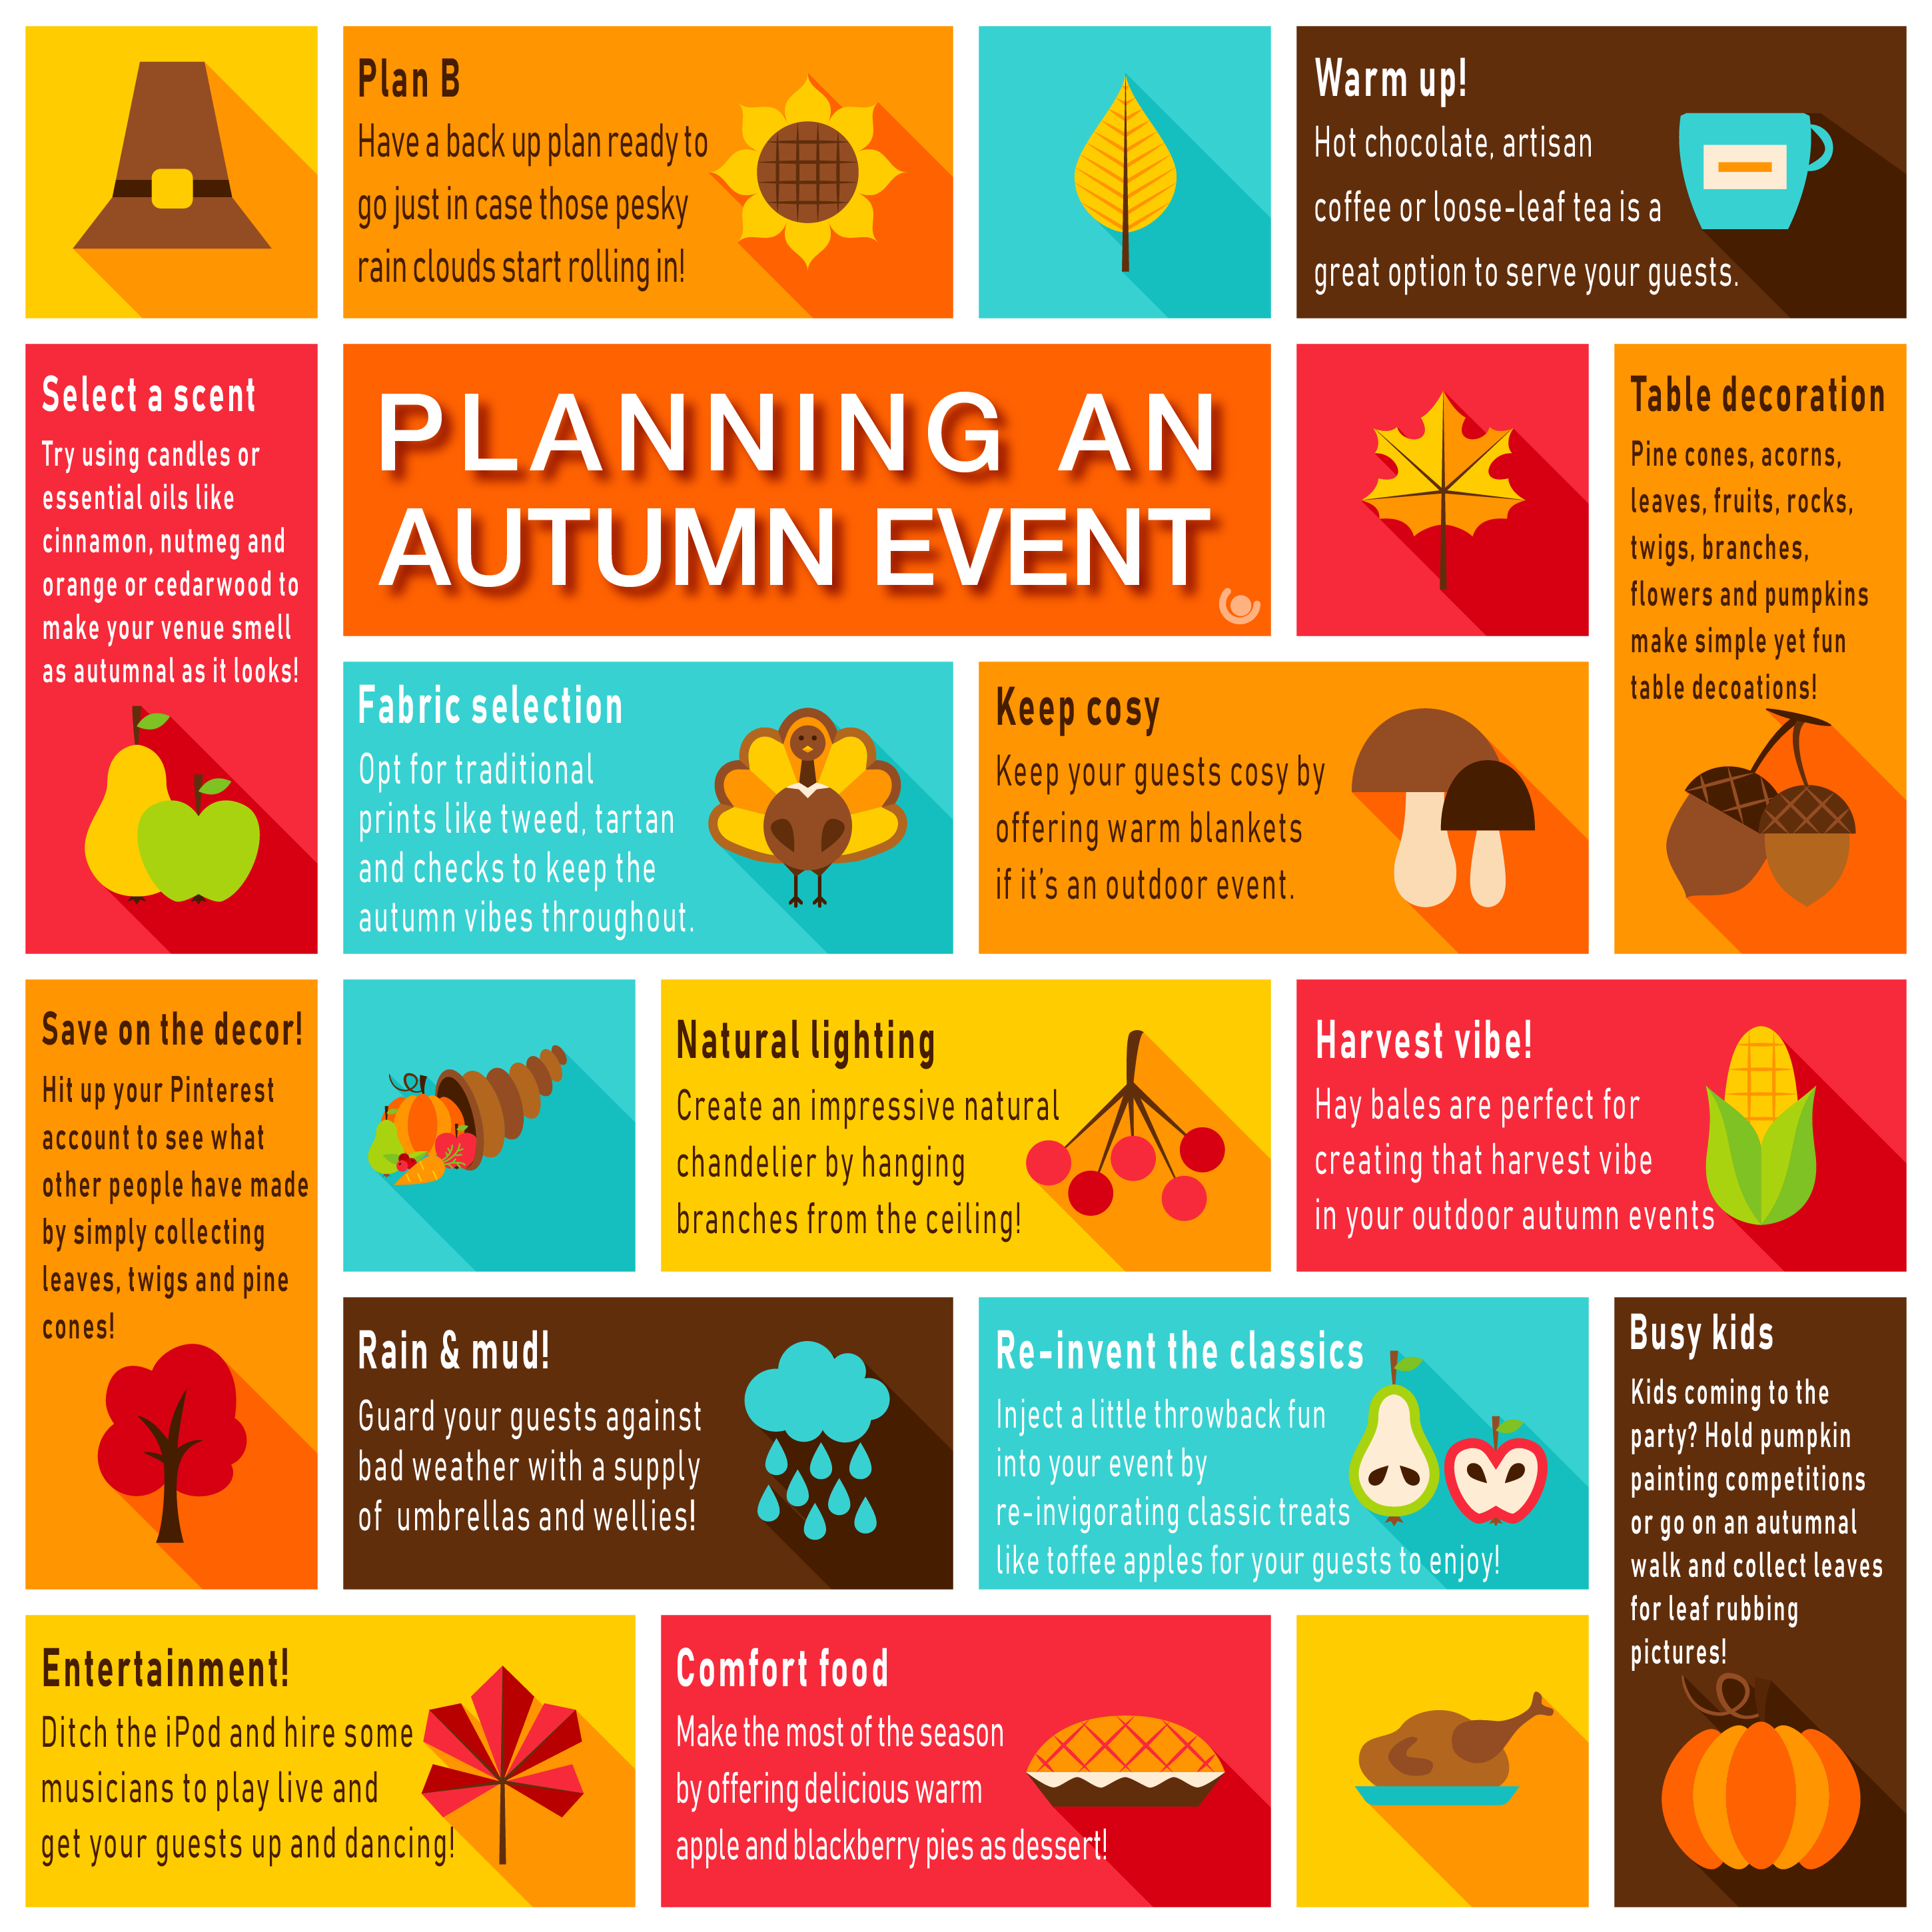 Autumn-Event-Infographic-main-image-v2-01.png